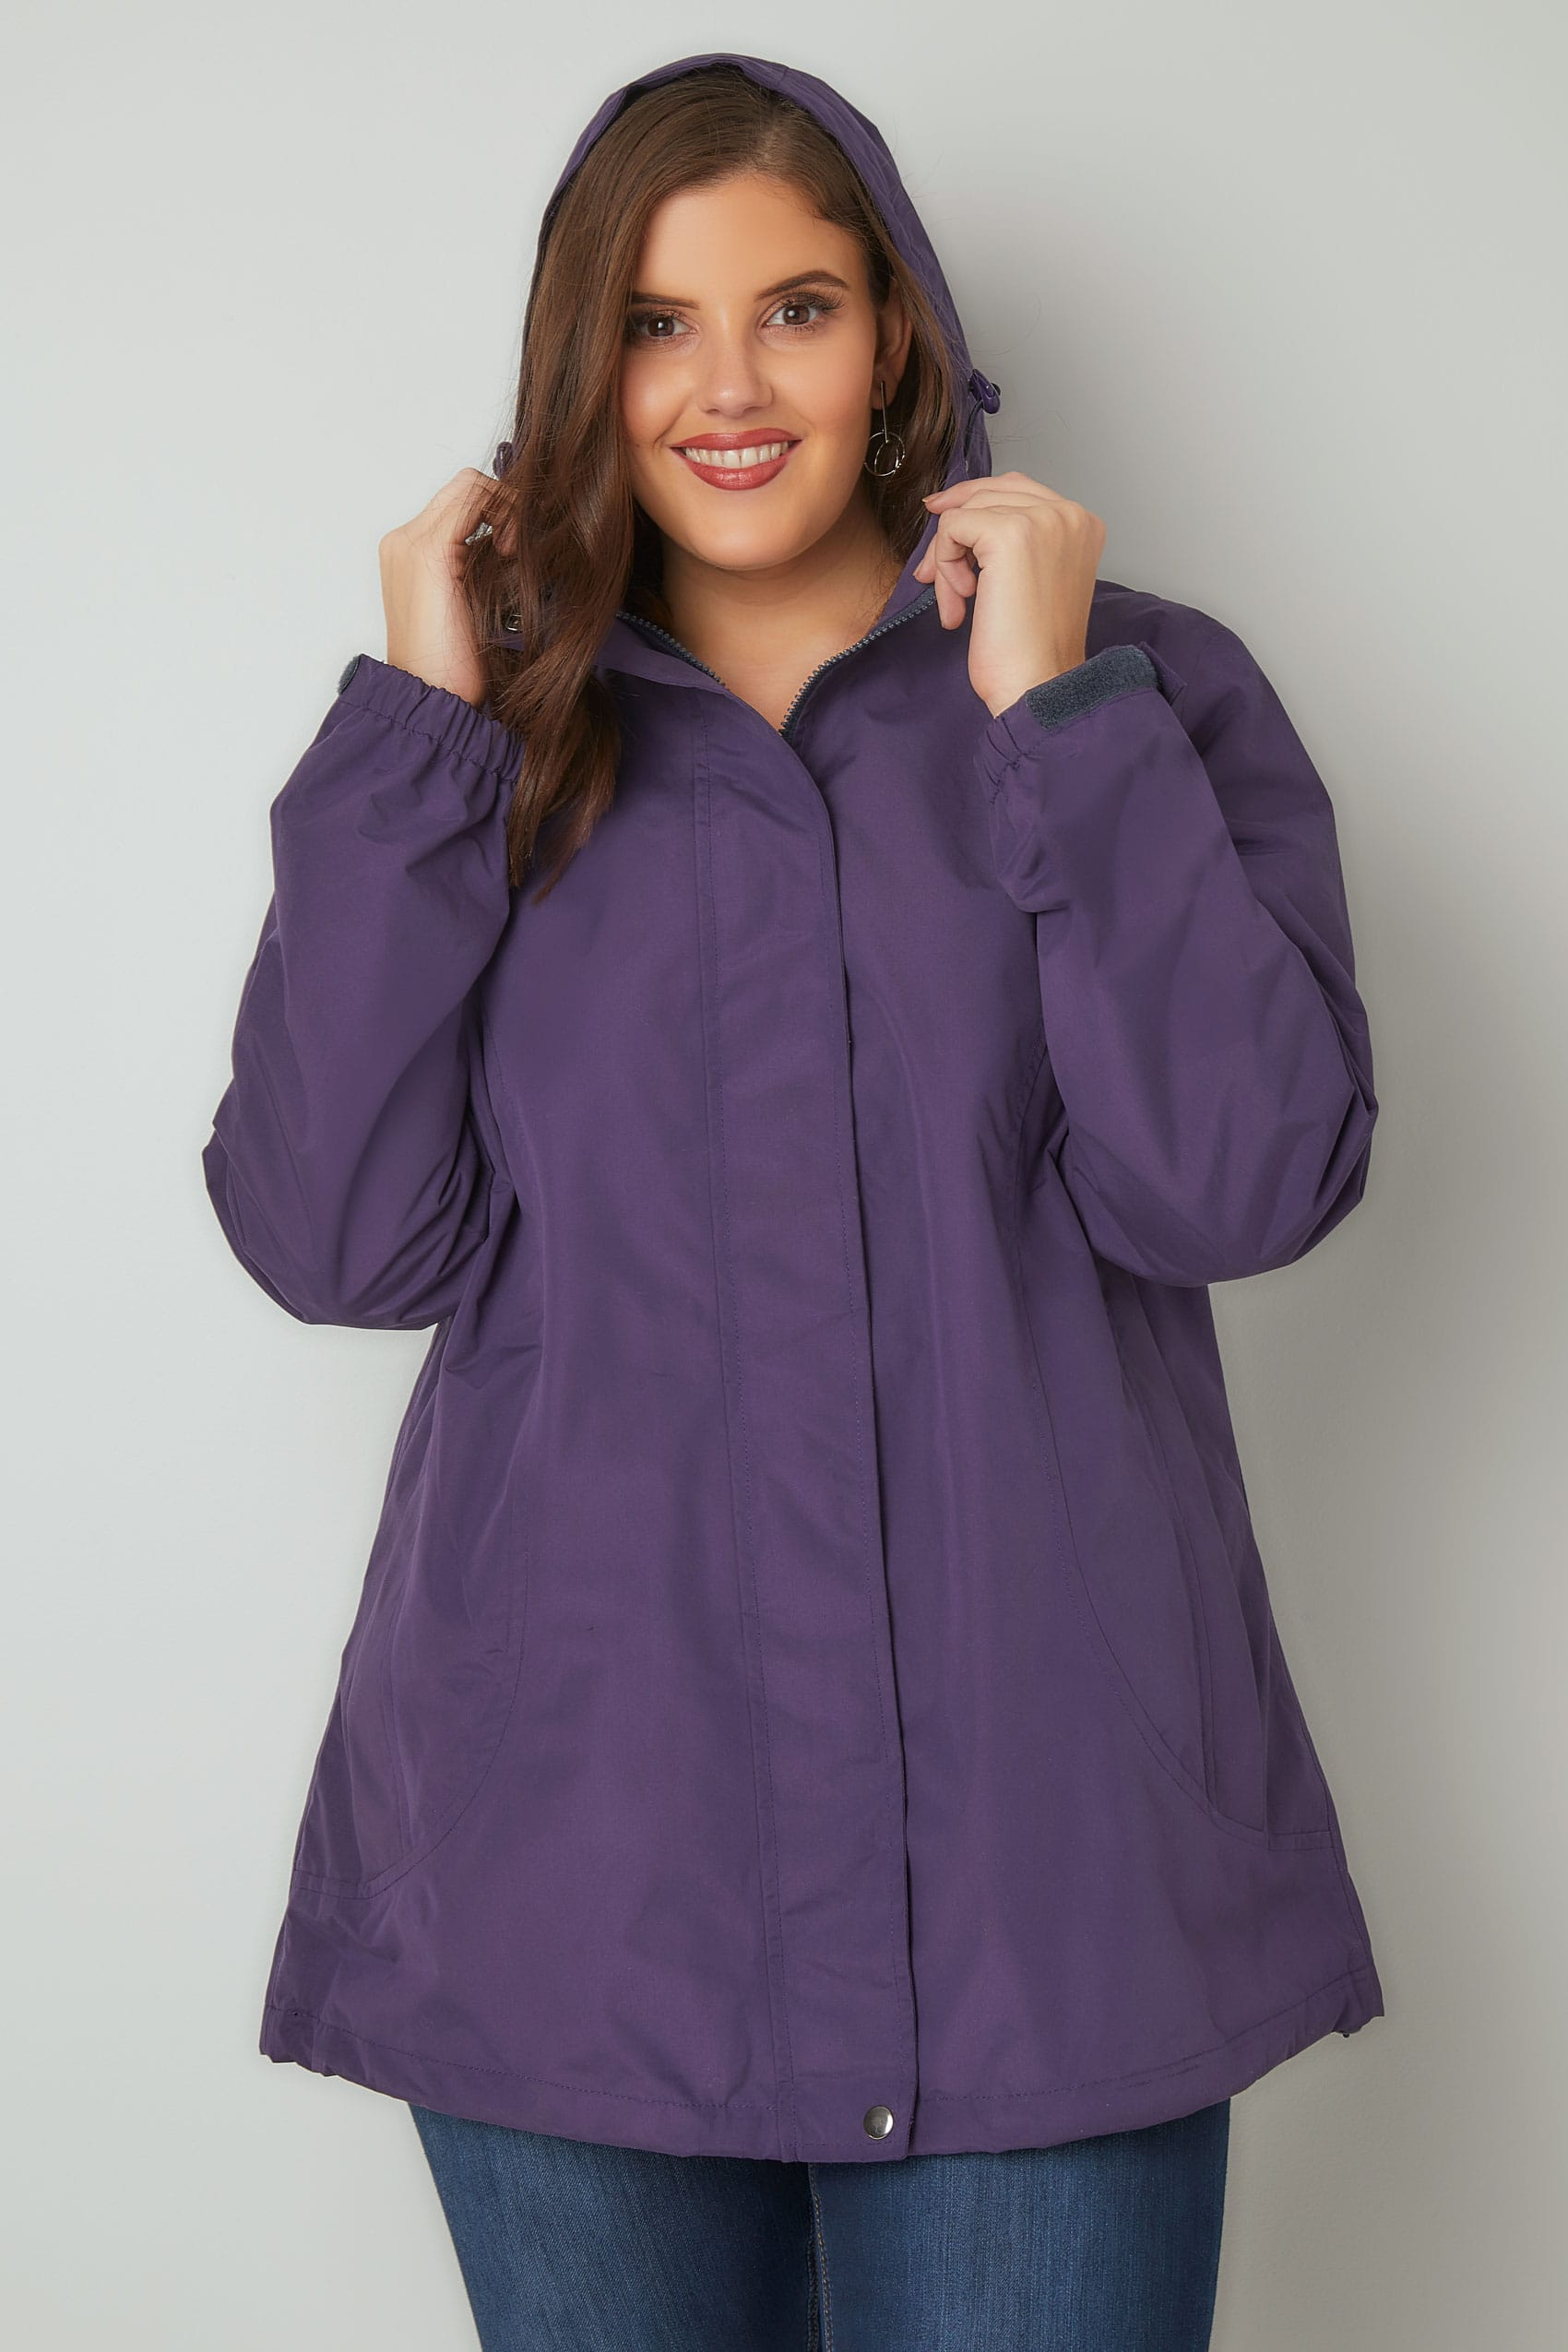 purple waterproof windproof jacket with hood plus size 16 to 36. Black Bedroom Furniture Sets. Home Design Ideas